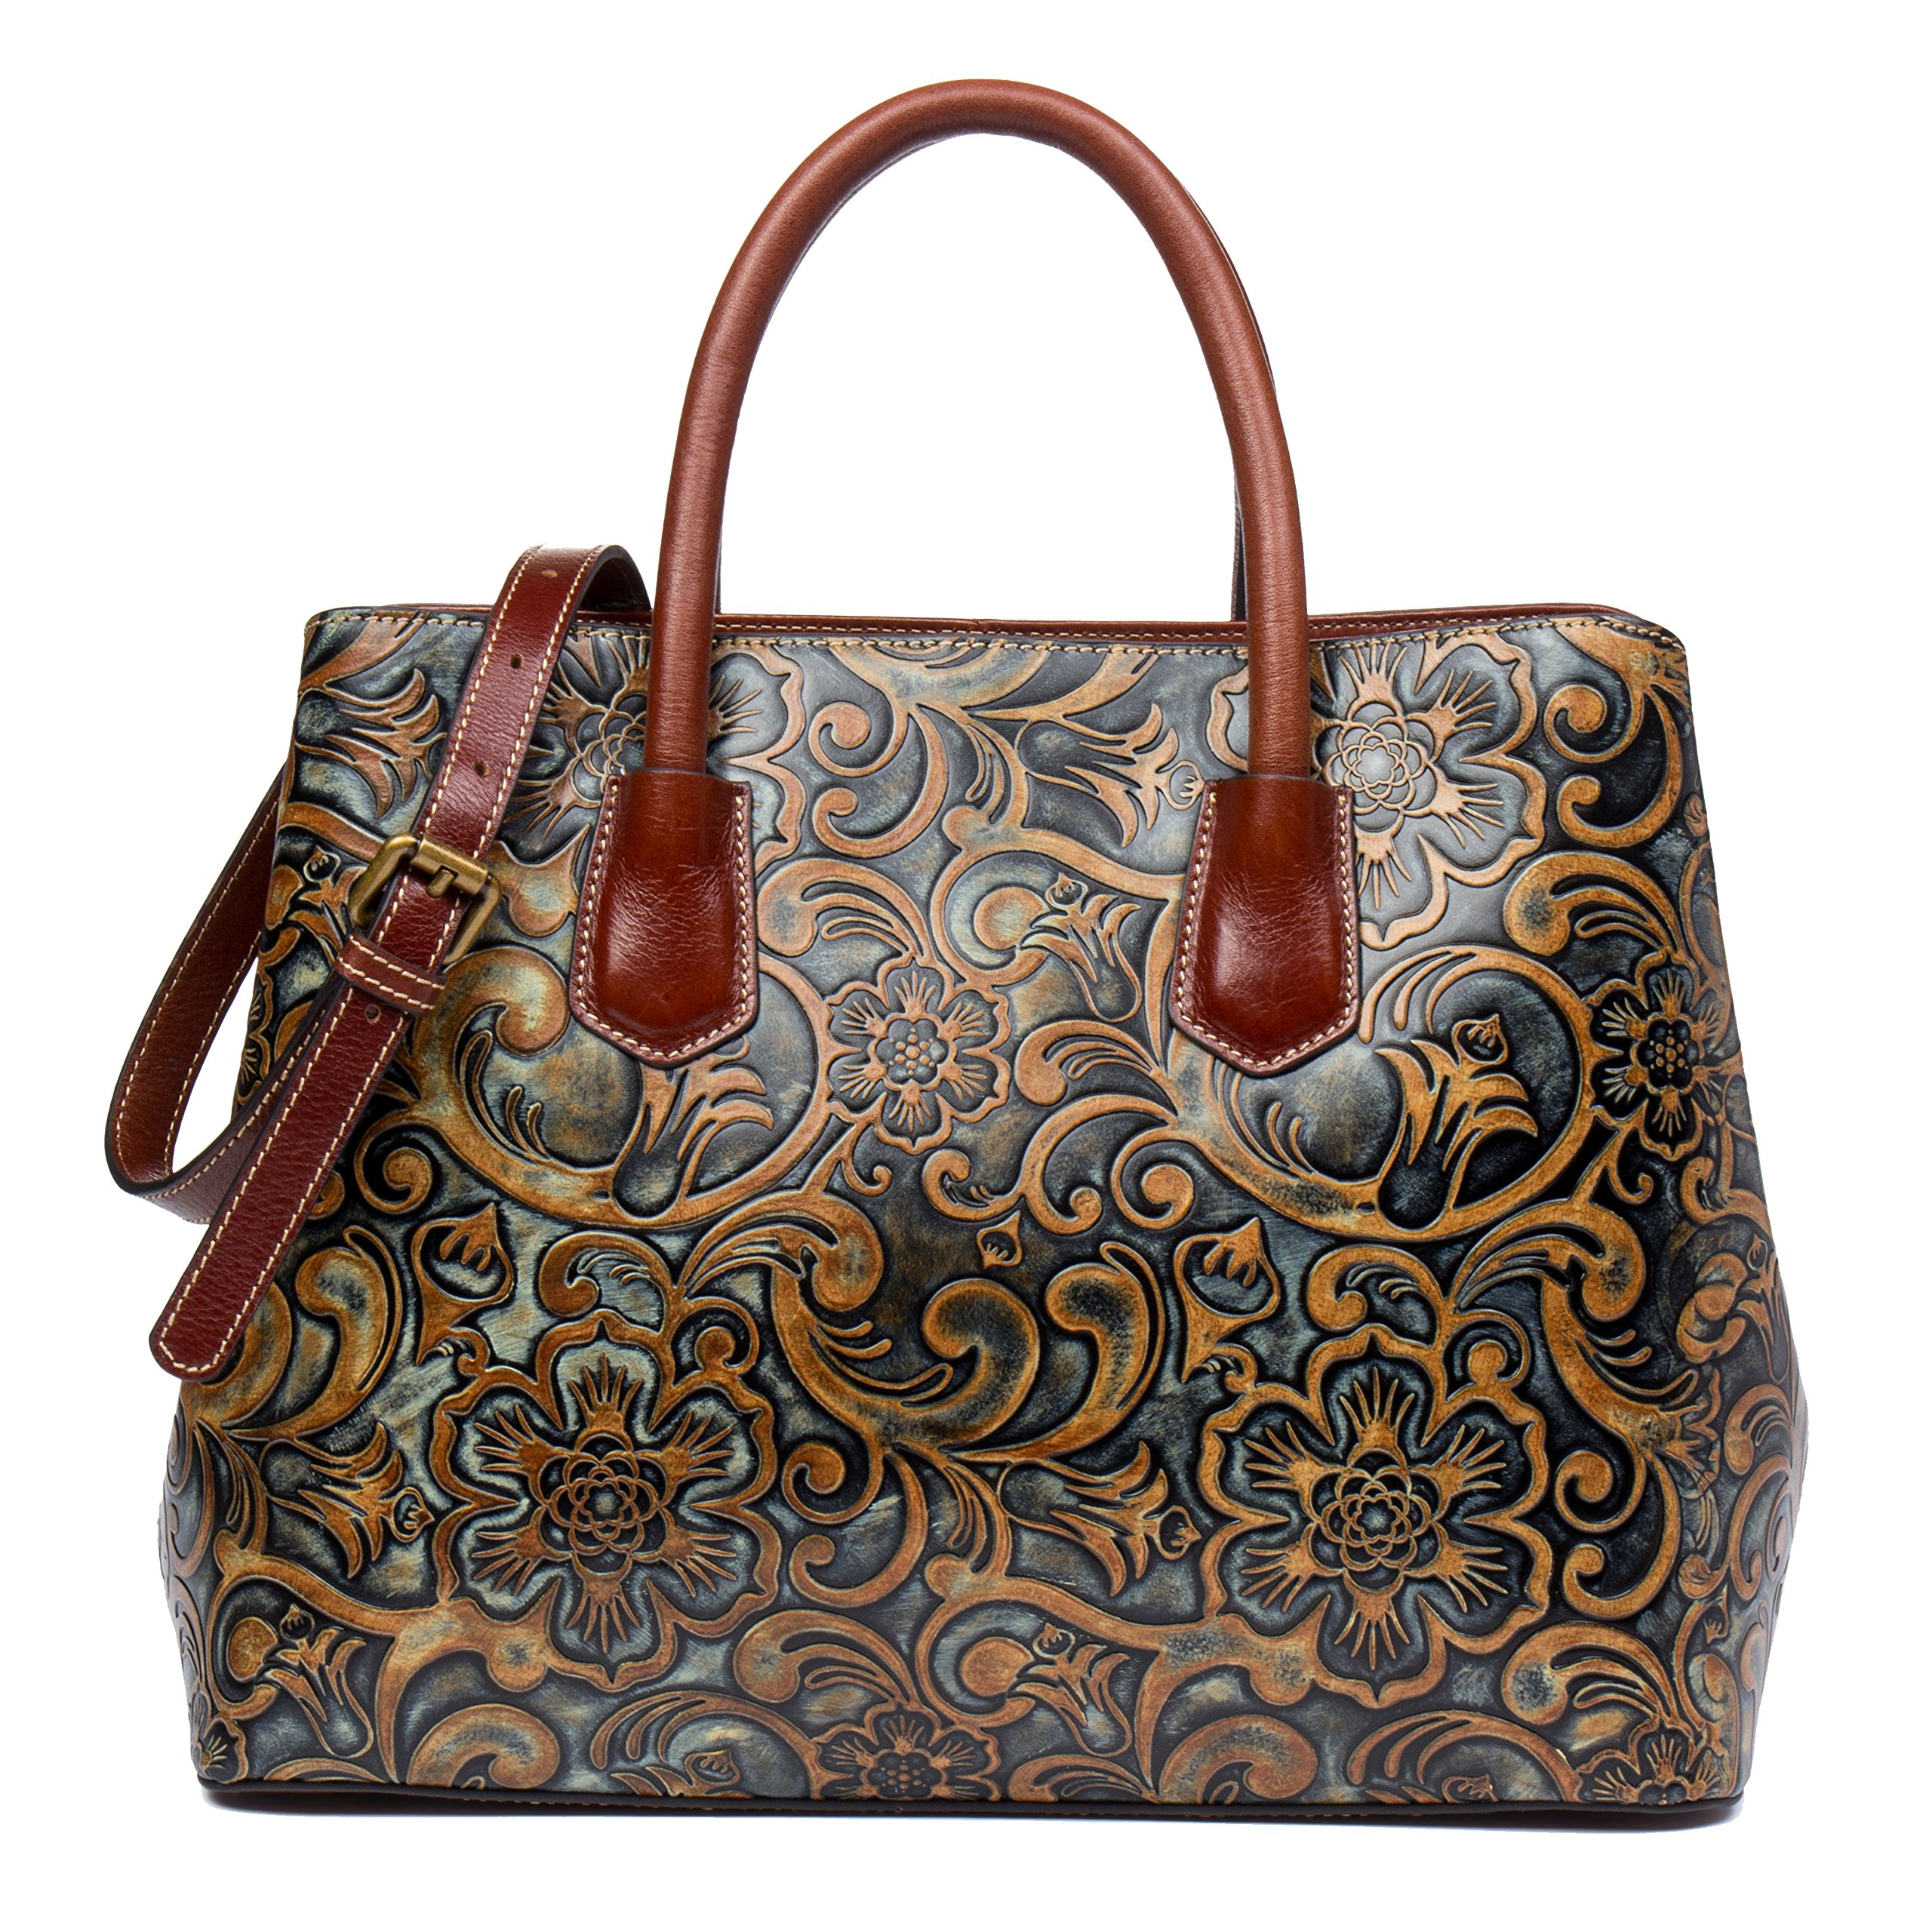 Malirona Embossed Floral Imported Leather Top-handle Bag For Women (Brown)